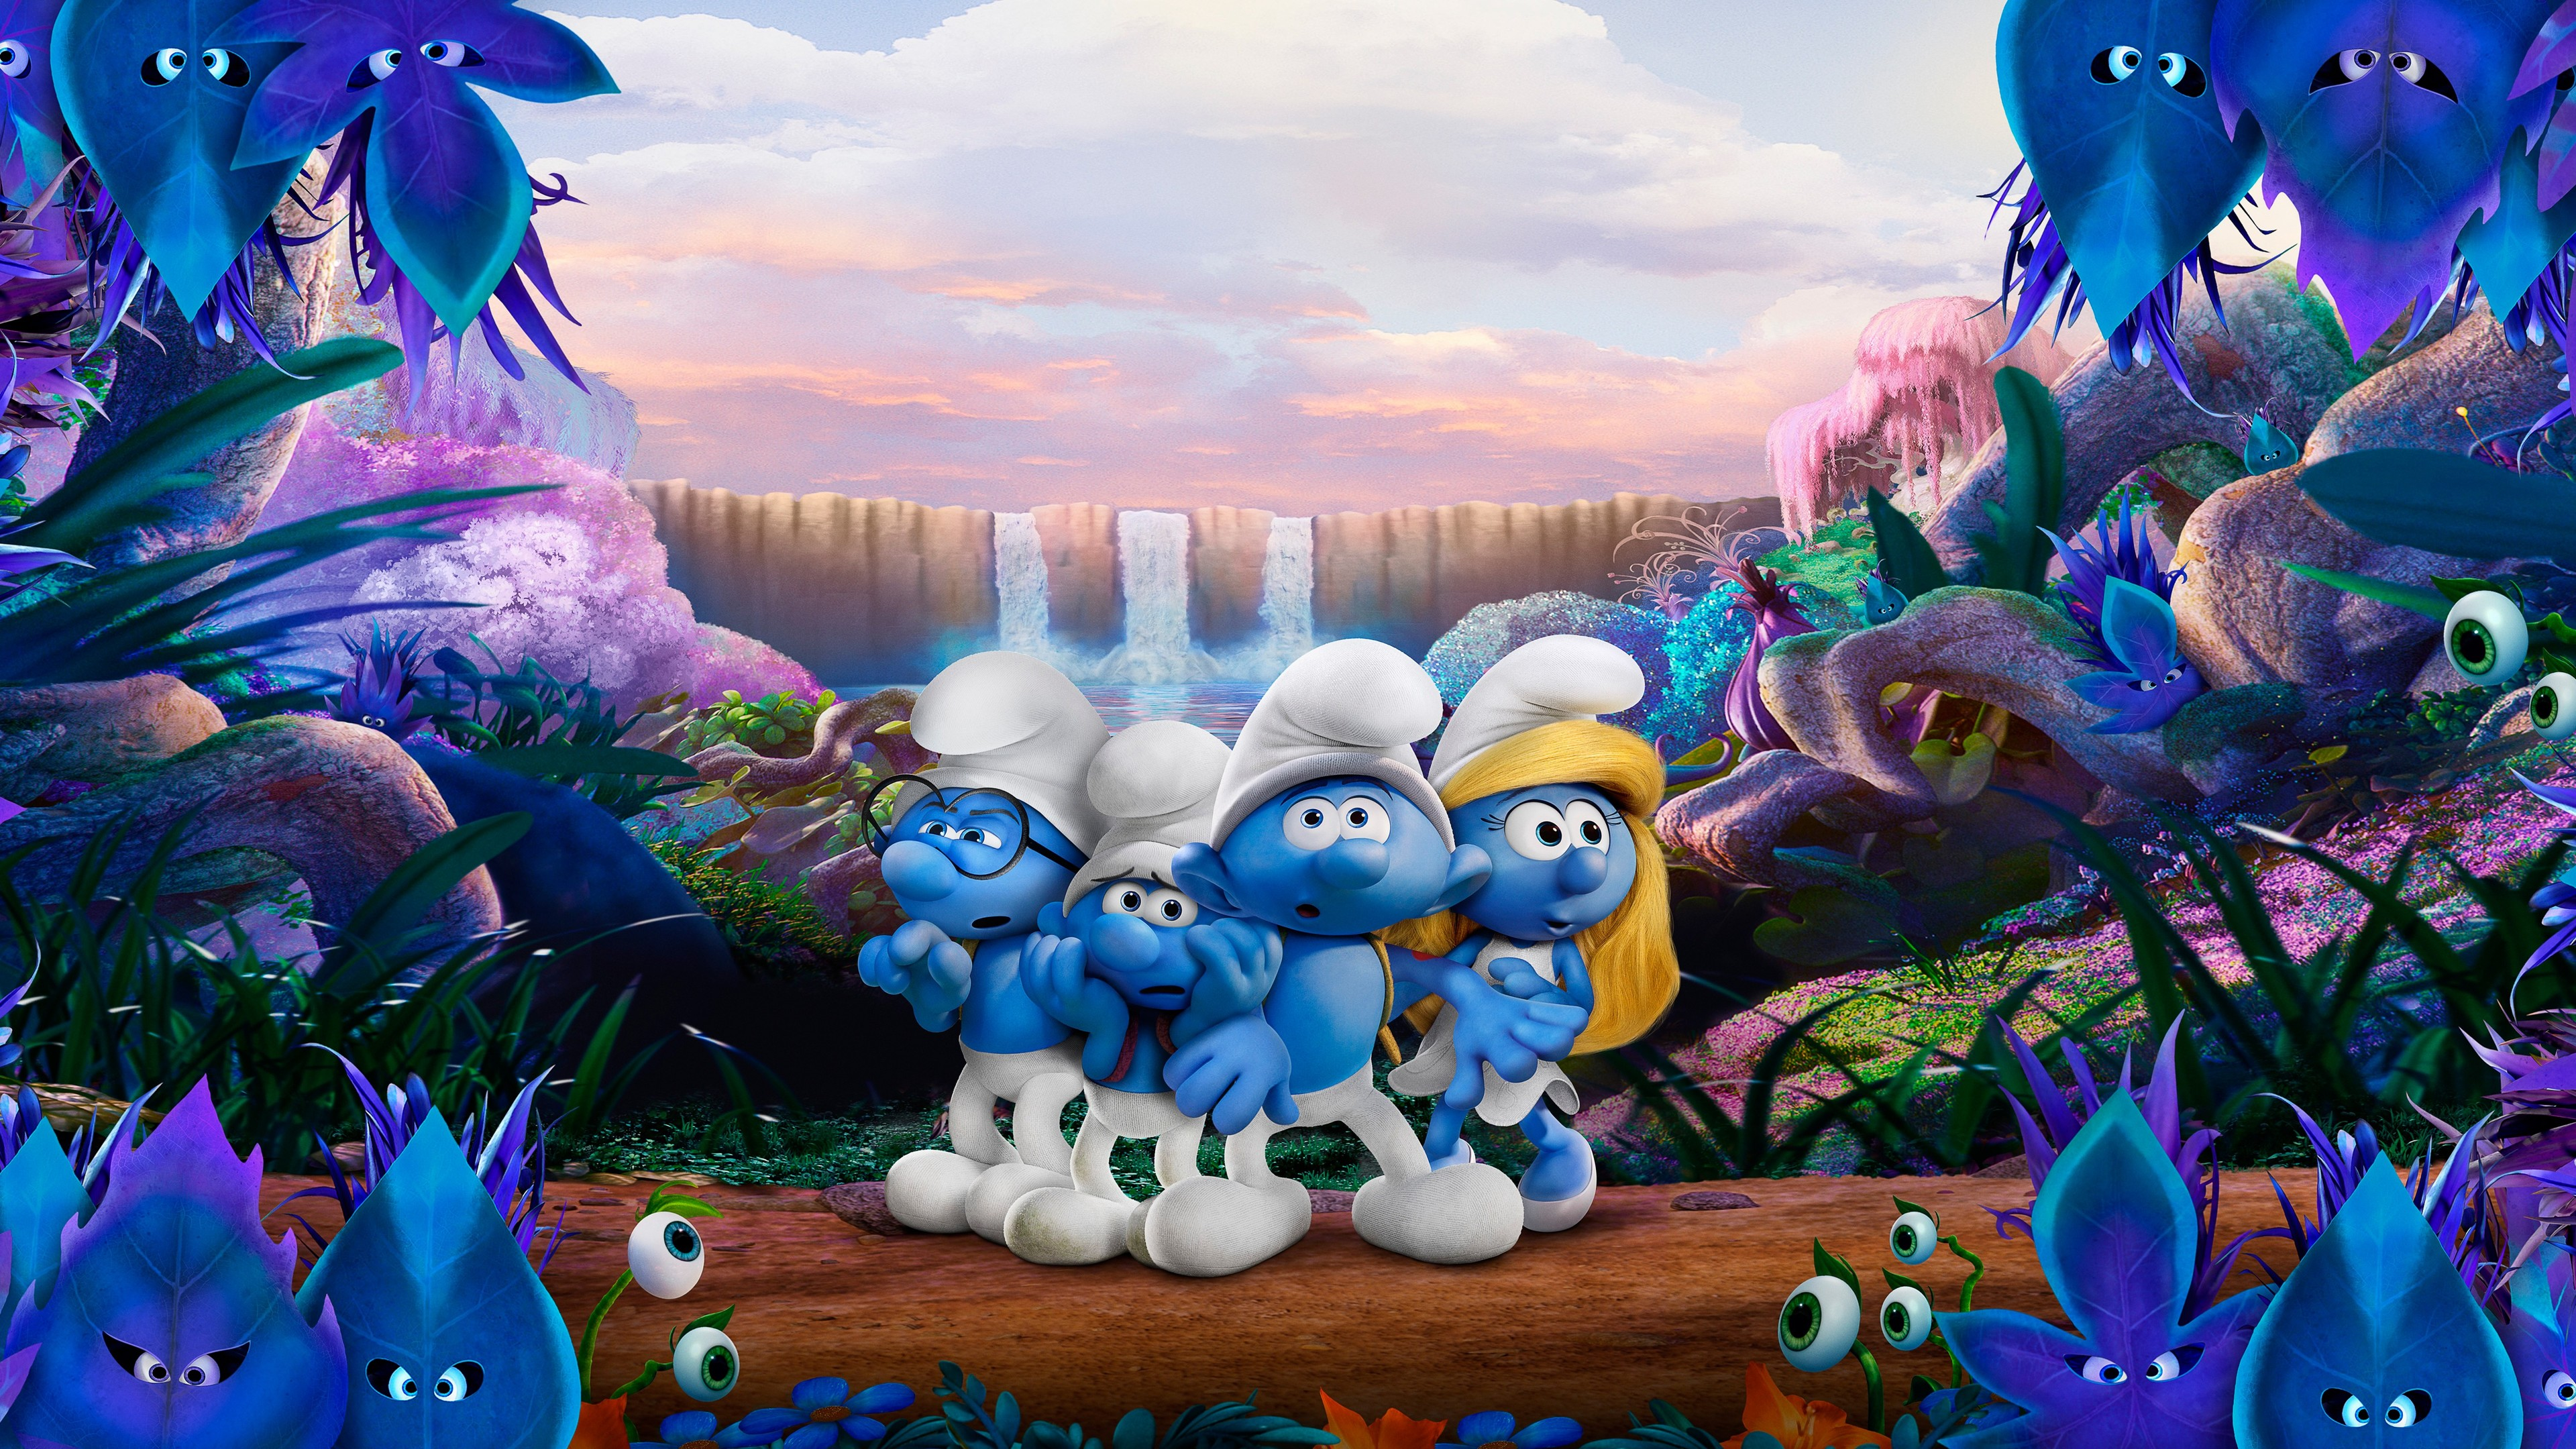 smurfs the lost village 4k 5k 1536401972 - Smurfs The Lost Village 4k 5k - smurfs wallpapers, smurfs the lost village wallpapers, movies wallpapers, hd-wallpapers, animated movies wallpapers, 5k wallpapers, 4k-wallpapers, 2017 movies wallpapers